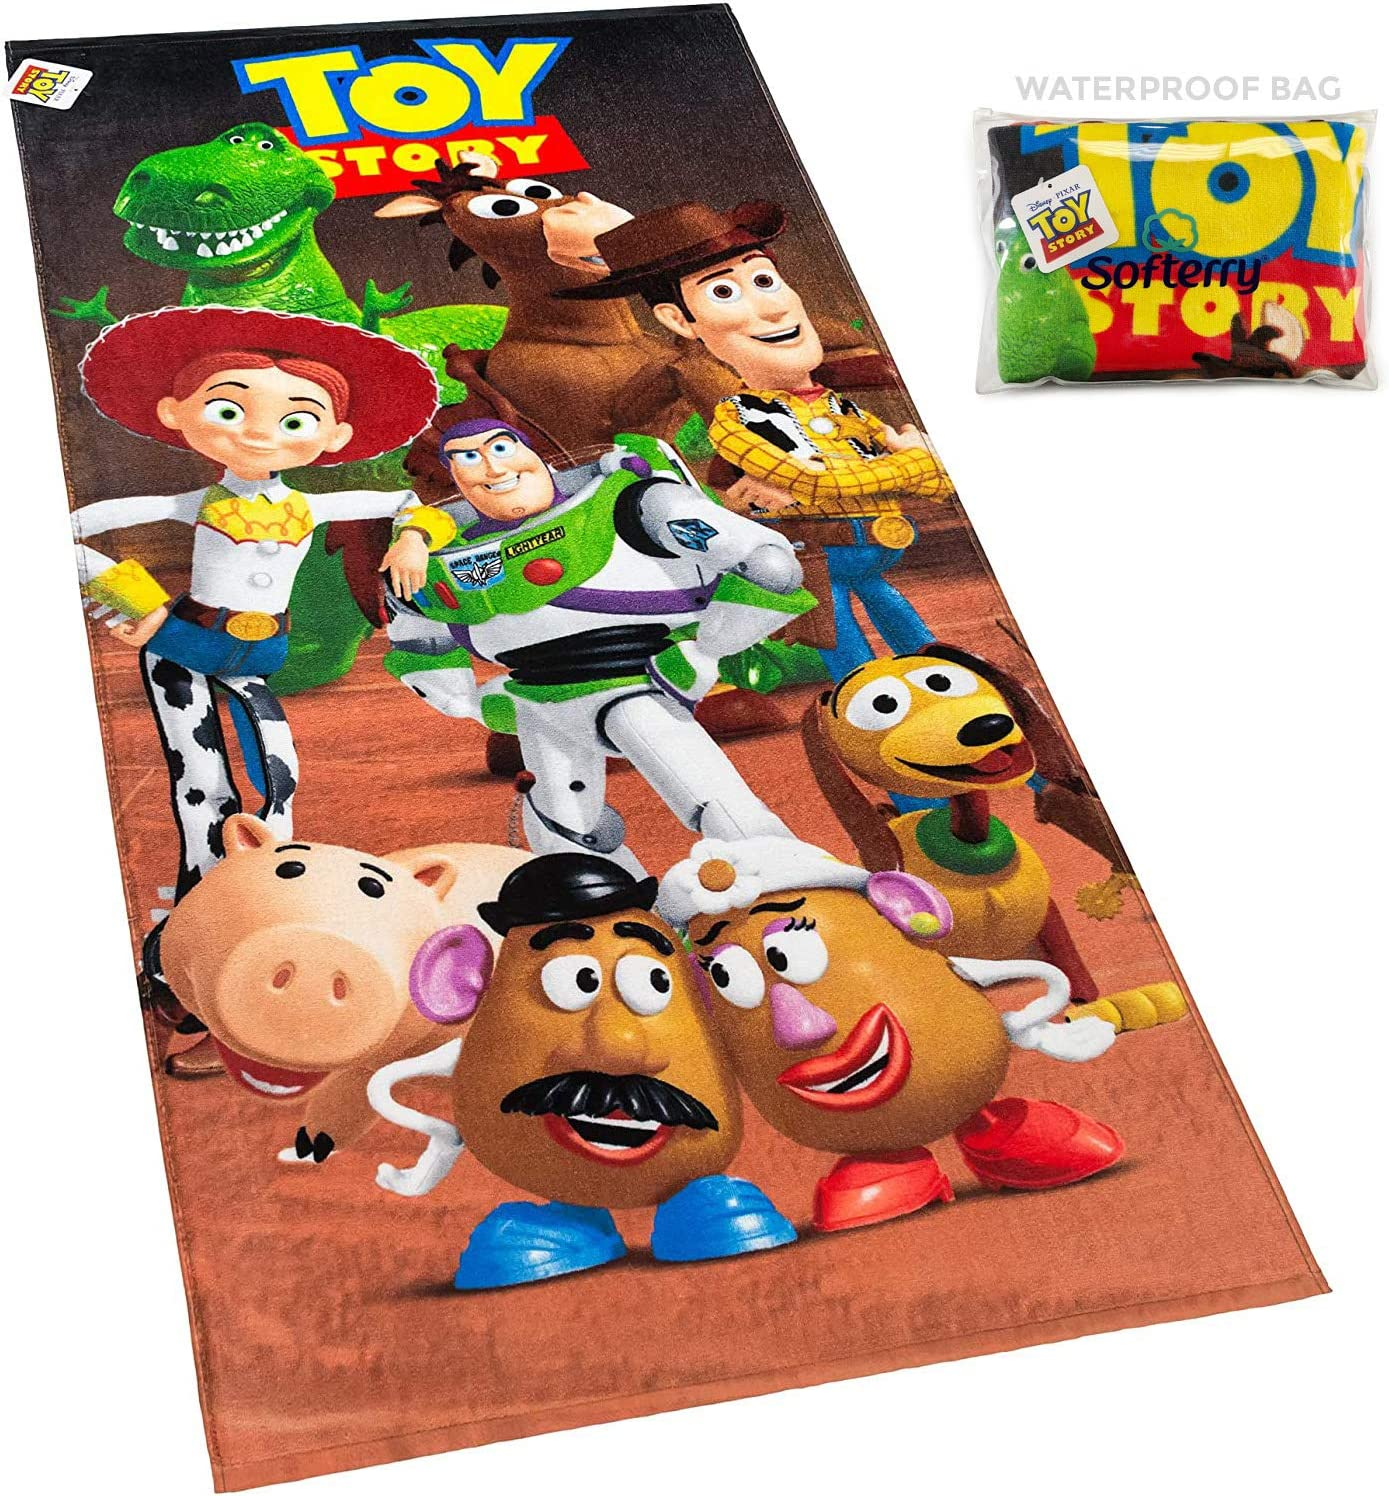 Toy Story Beach Towel Buzz, Woody, Potato Head, Slinky Dog 28 x 58 inches Printed 100% Cotton (Toy Story Gang + Bag)